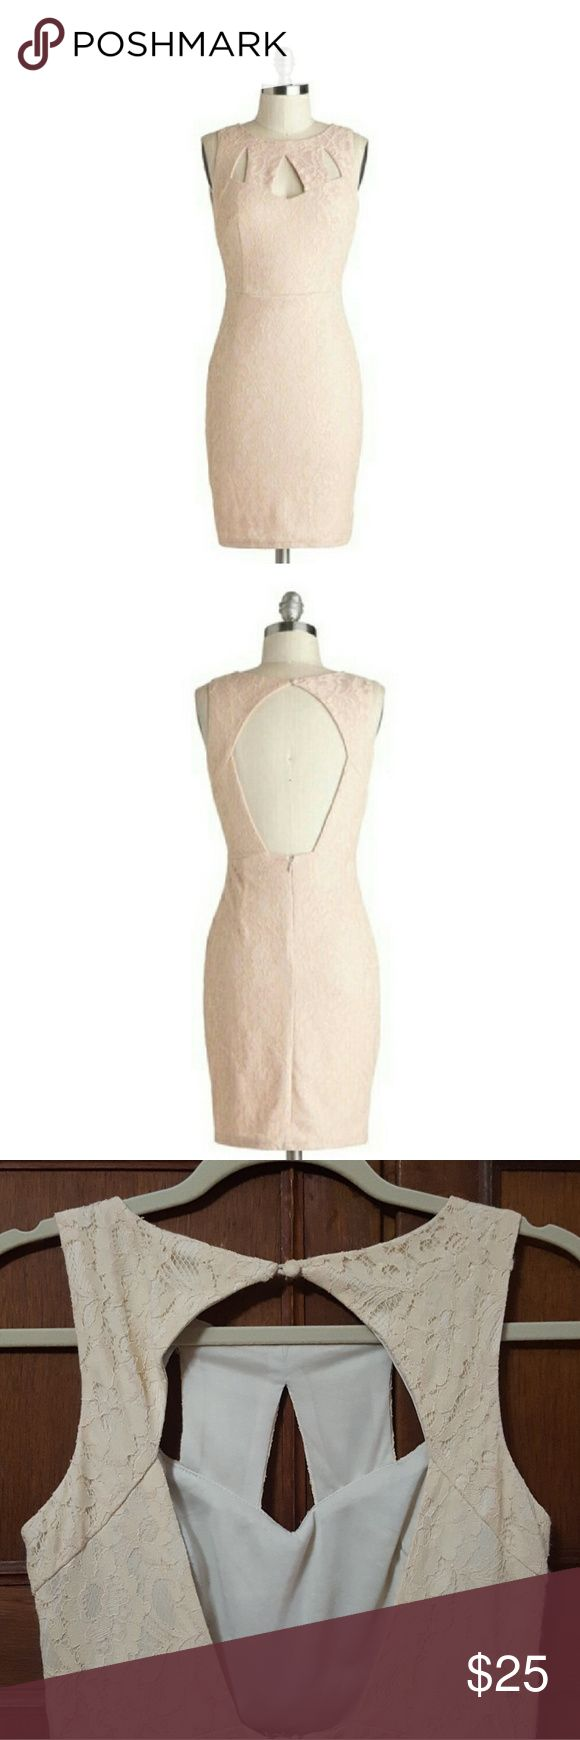 """Ark & Co. Peach Lace Cutout Sleeveless Tea Dress Beautiful dress. """"Across the Table"""" dress in Petal by Ark & Co. Good overall condition. Does have lint/""""fuzzies"""". See close-up pics for examples. Lovely pale peach (or pale nude) color.   When flat: Shoulder to shoulder approx 11 3/4"""", armpit to armpit 16.5"""", waist 13.5"""", length 32"""". All measurements are approximate. Ark & Co Dresses"""